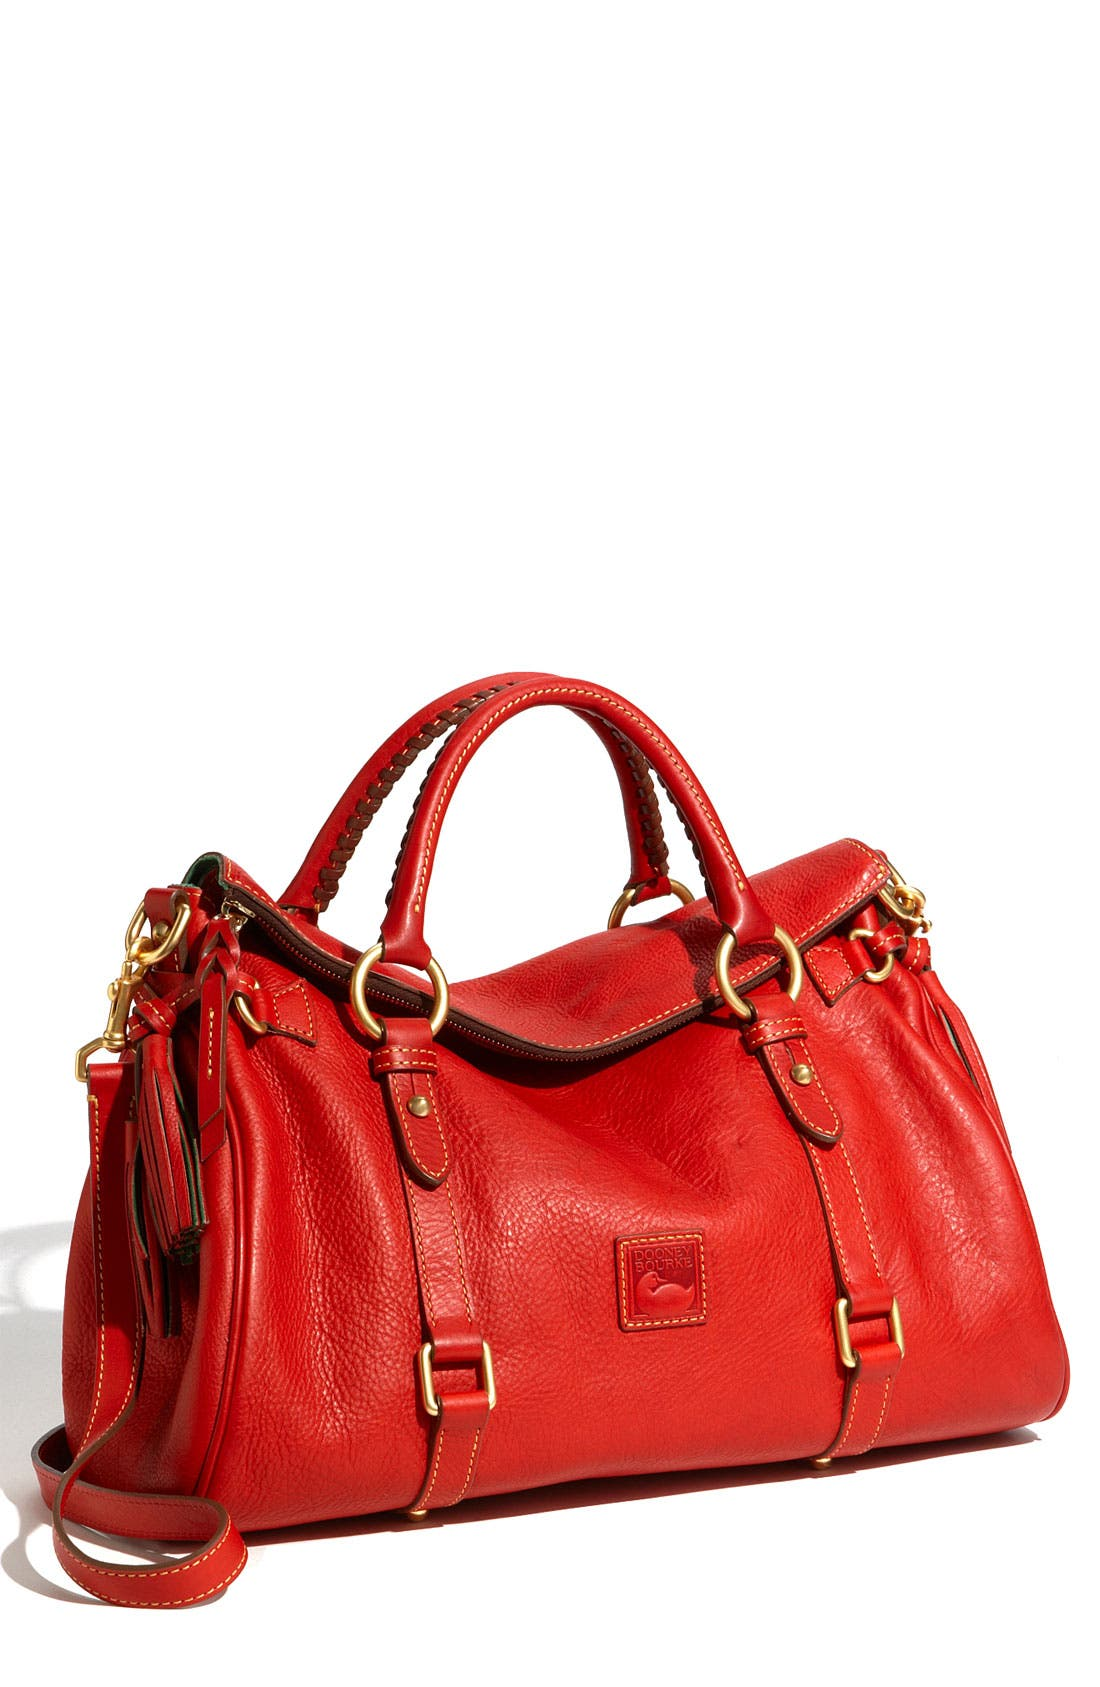 Alternate Image 1 Selected - Dooney & Bourke 'Florentine Collection' Vachetta Leather Satchel